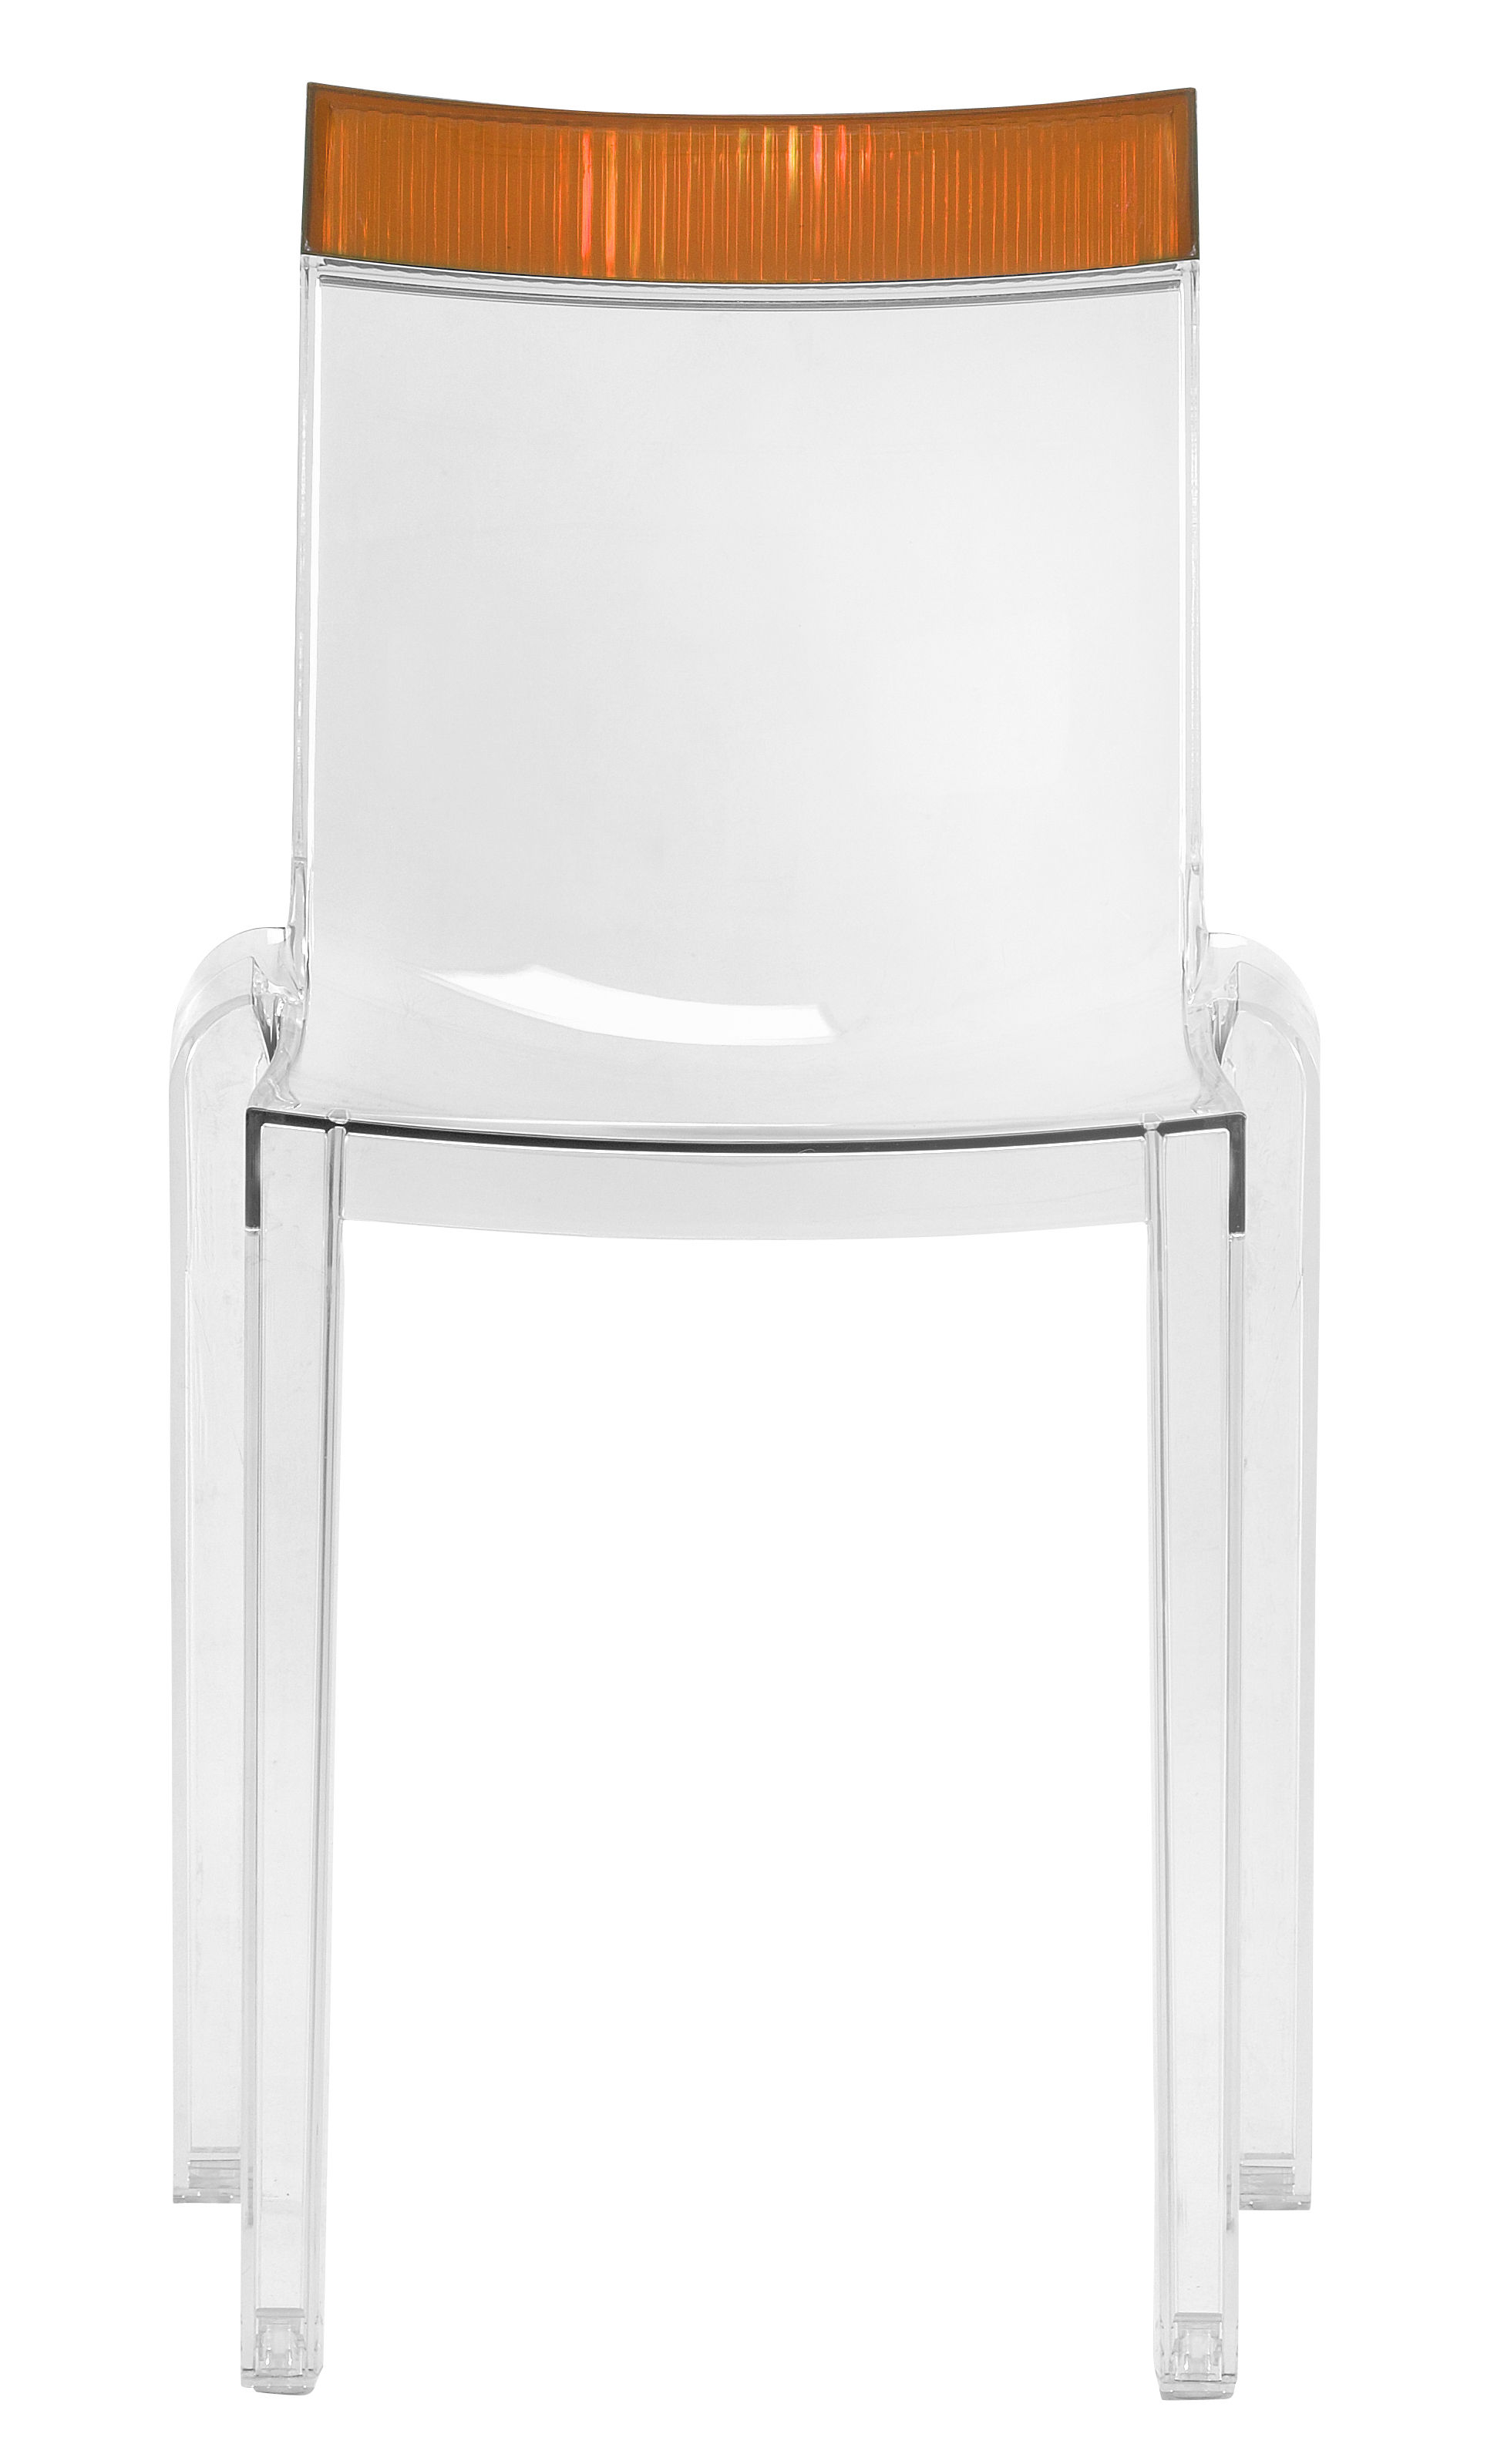 Furniture - Chairs - Hi Cut Stacking chair - Transparent polycarbonate by Kartell - Cristal / orange - Polycarbonate